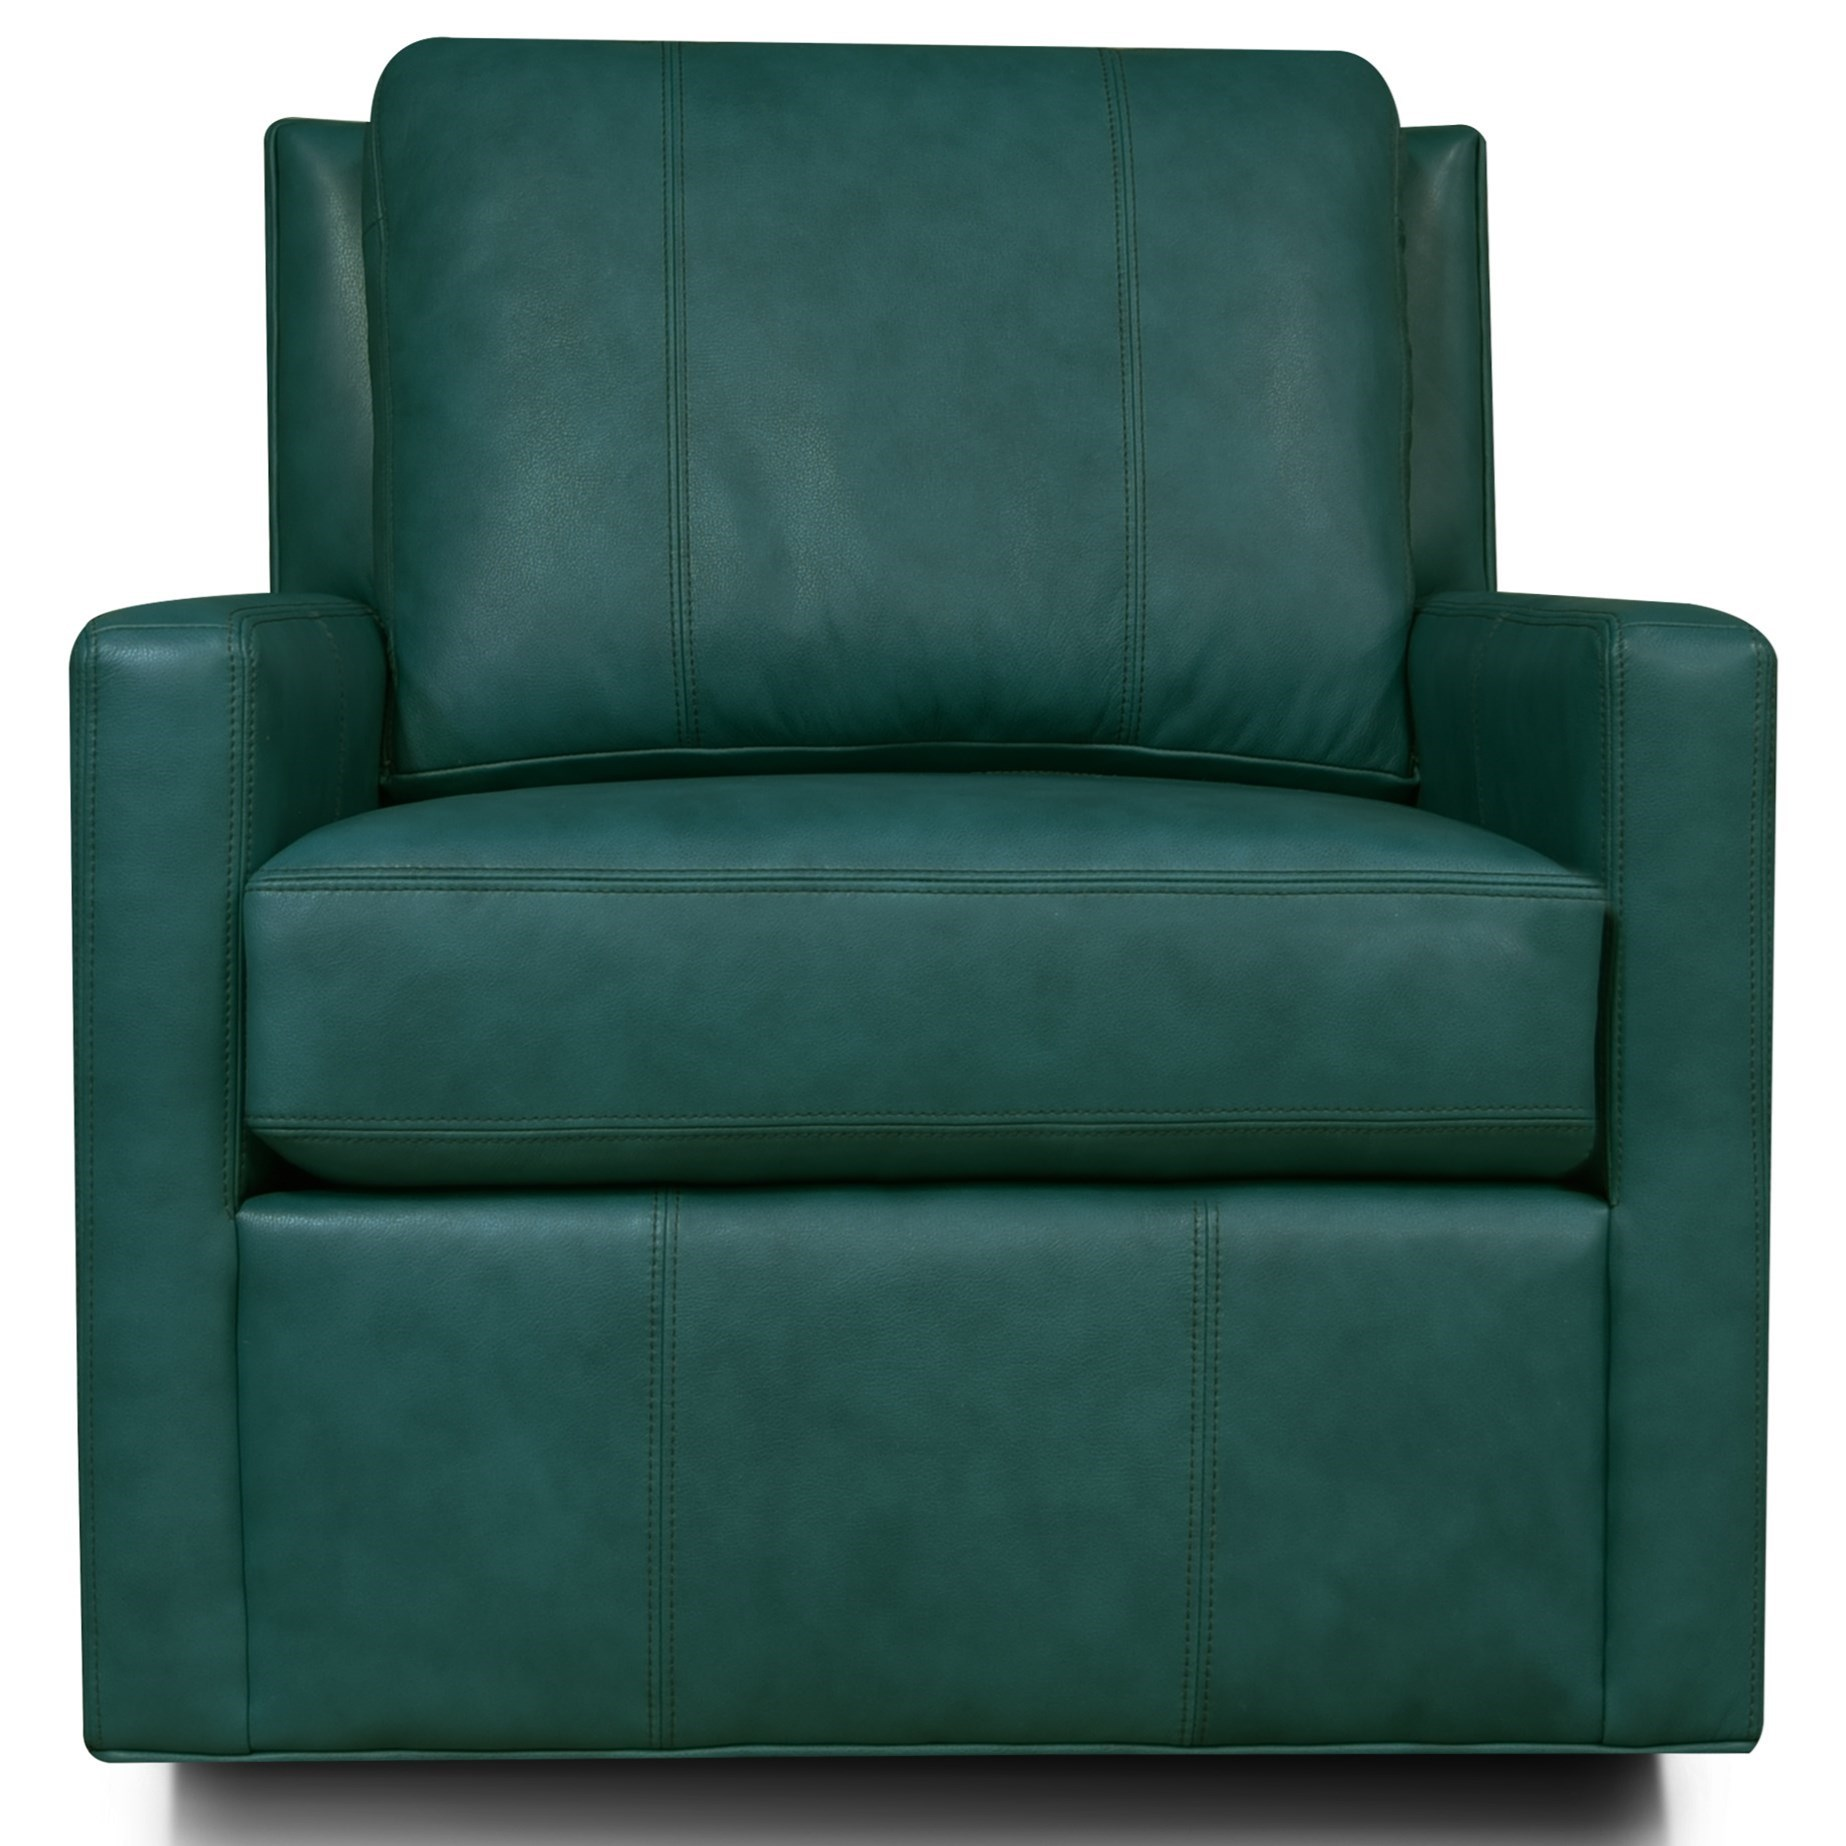 Maverick Swivel Chair by England at SuperStore